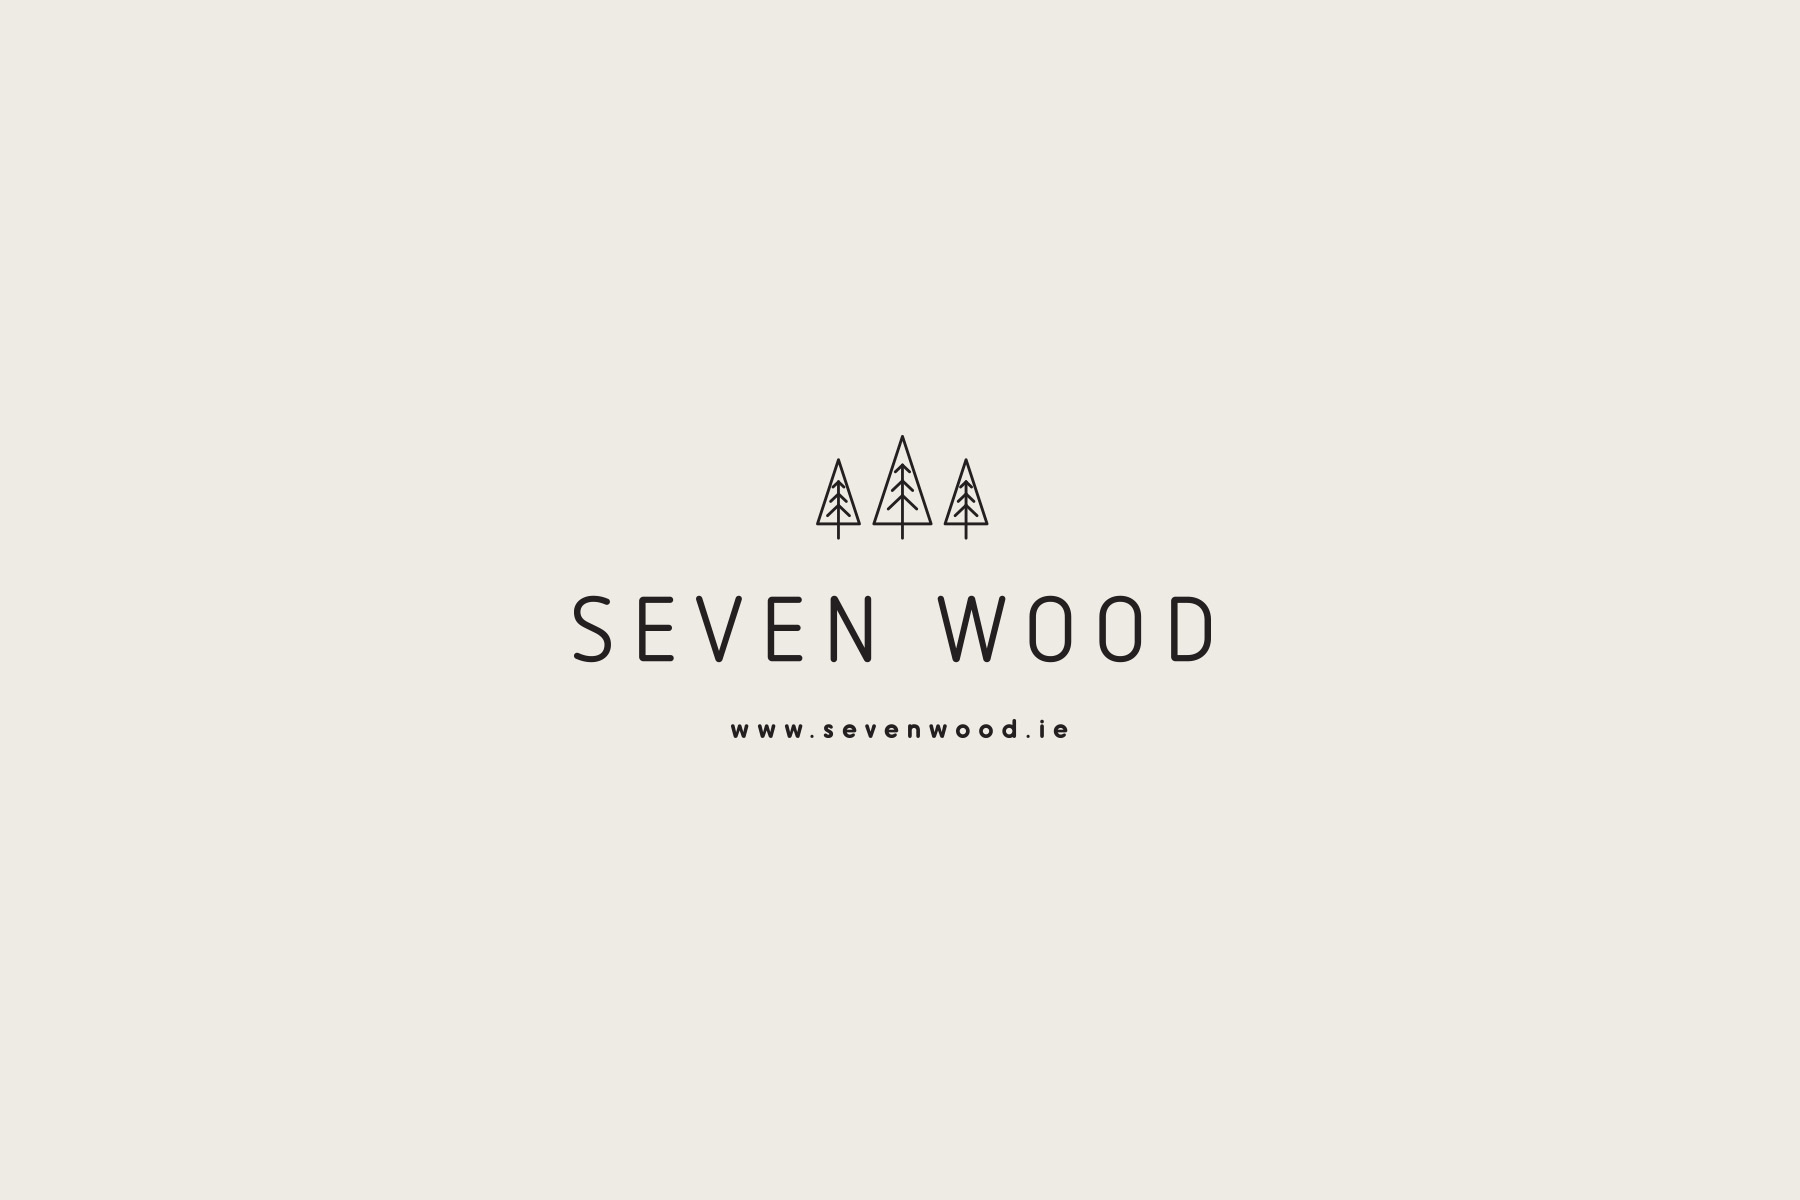 Seven Wood revert design